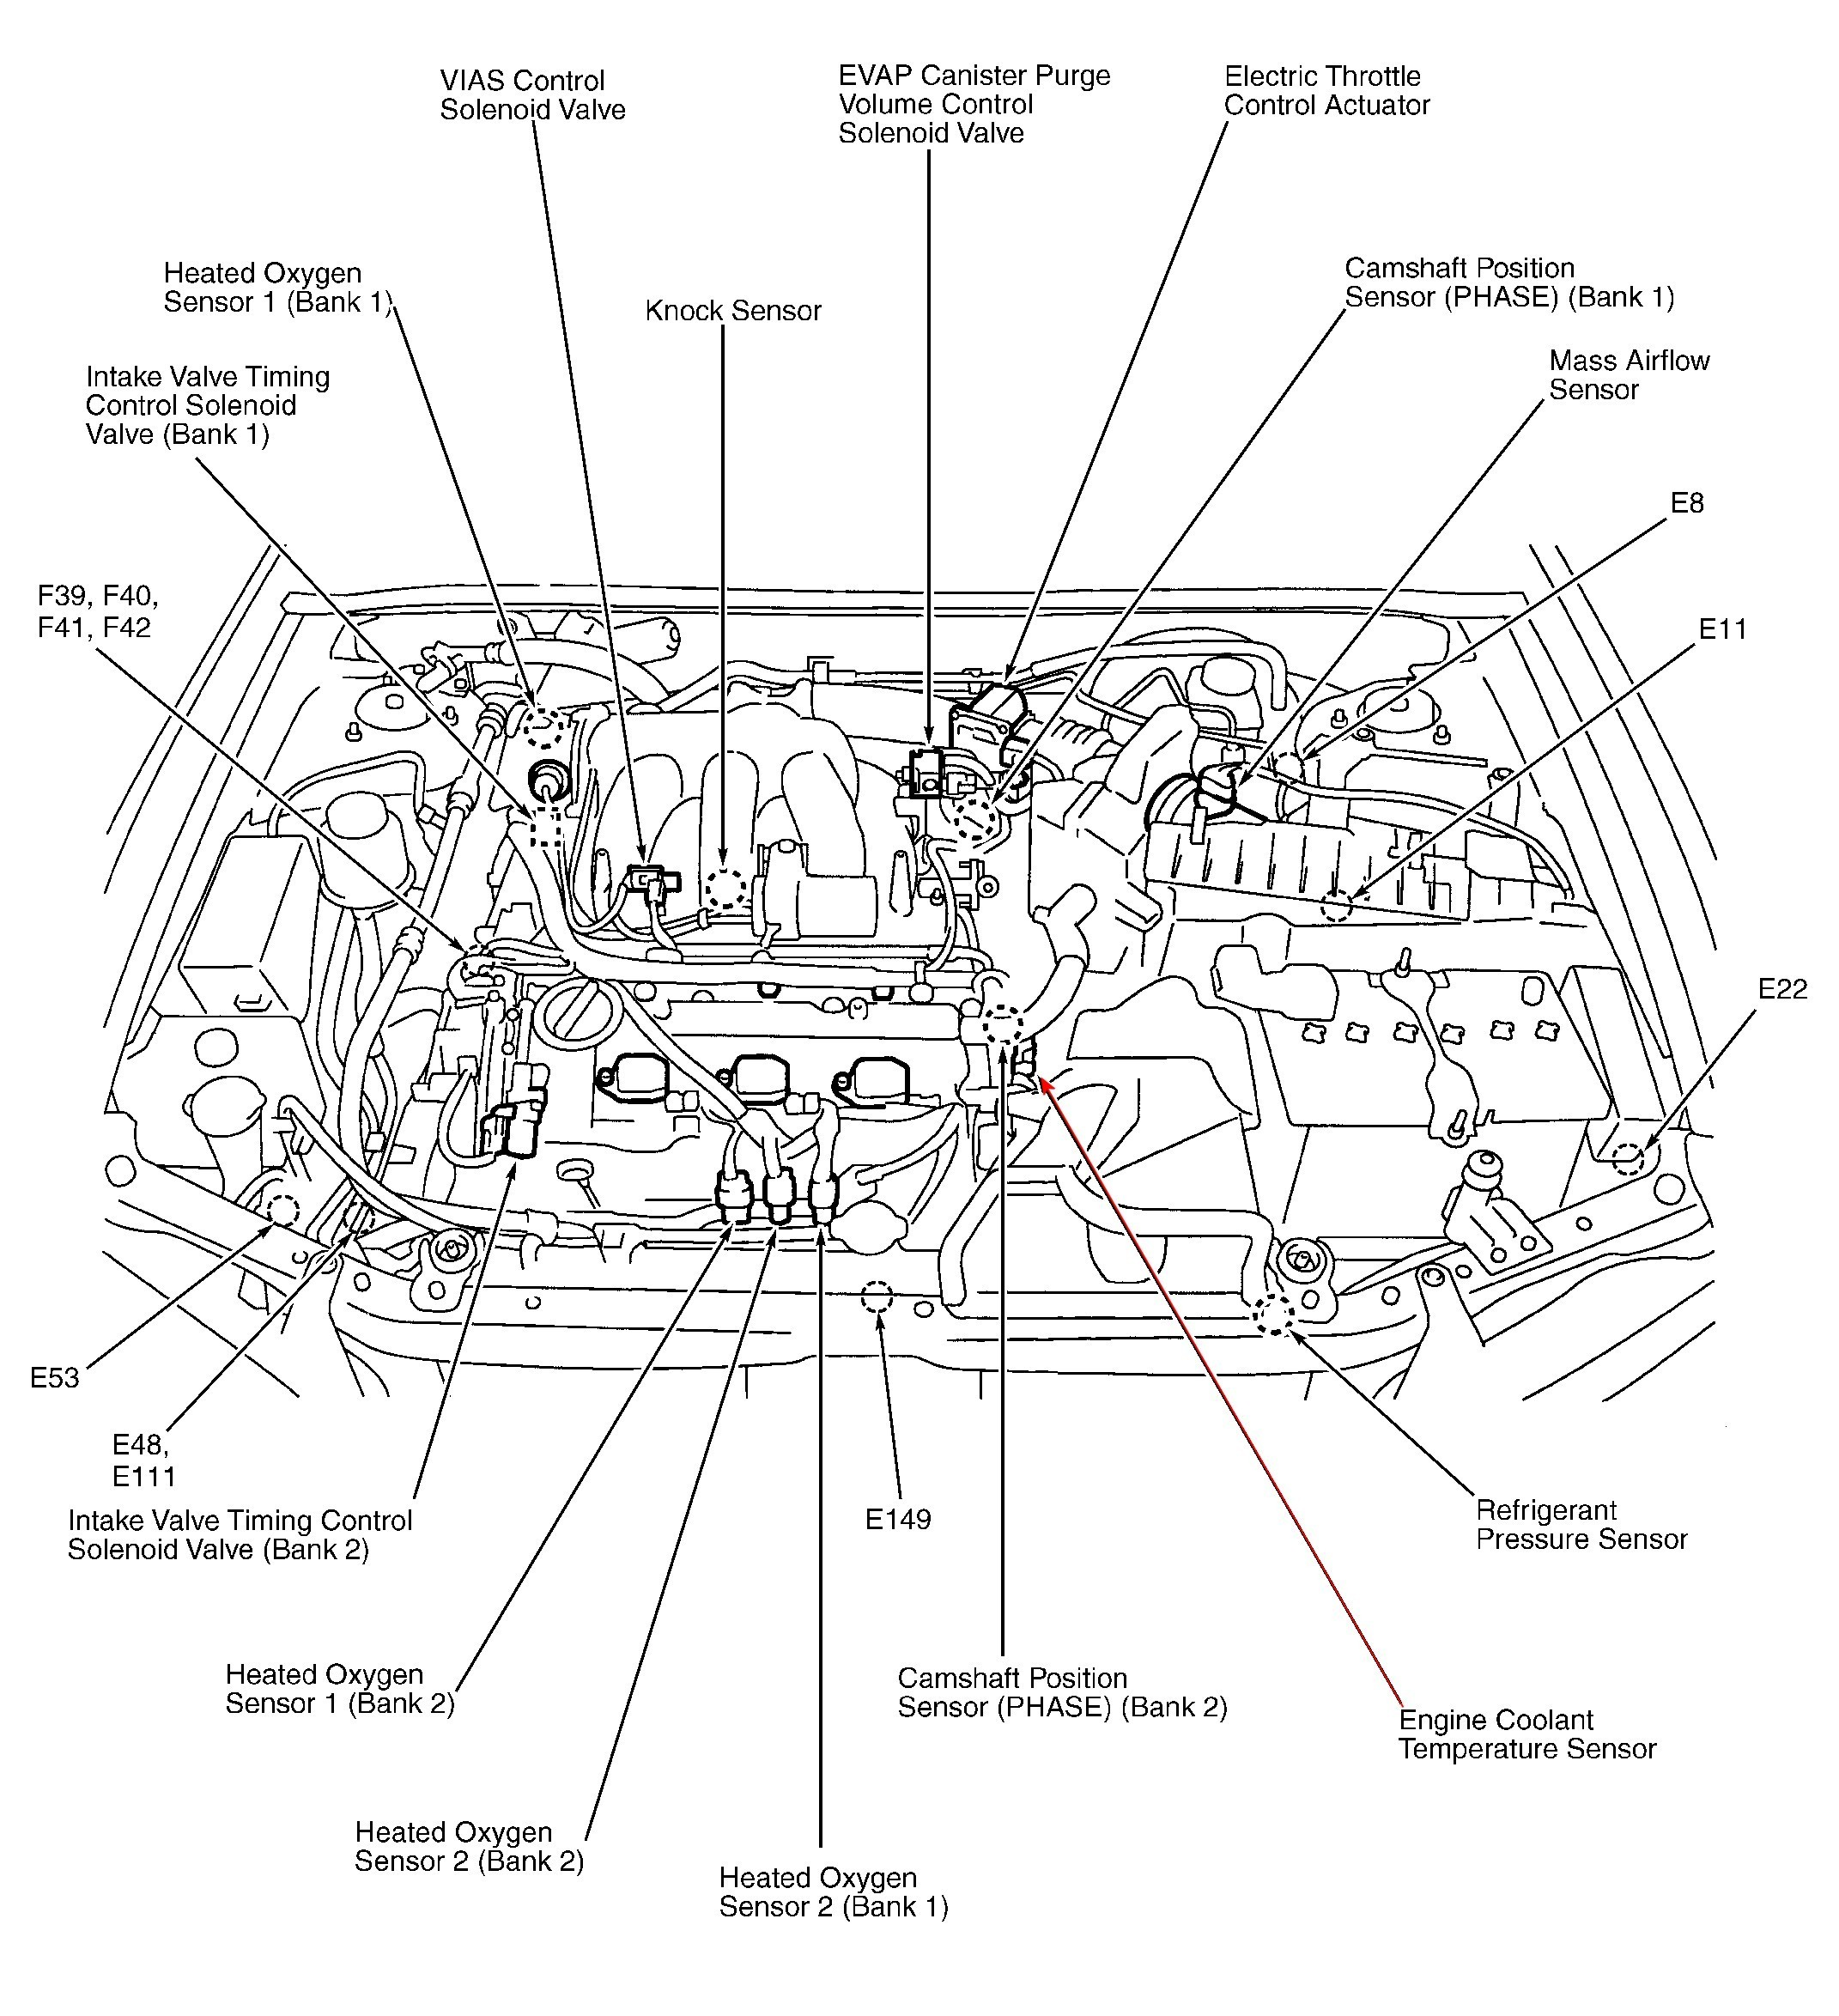 2005 Nissan Xterra Engine Diagram 2002 Nissan Xterra Engine Diagram 2005 Nissan Pathfinder Of 2005 Nissan Xterra Engine Diagram 1998 Nissan Frontier Wiring Diagram